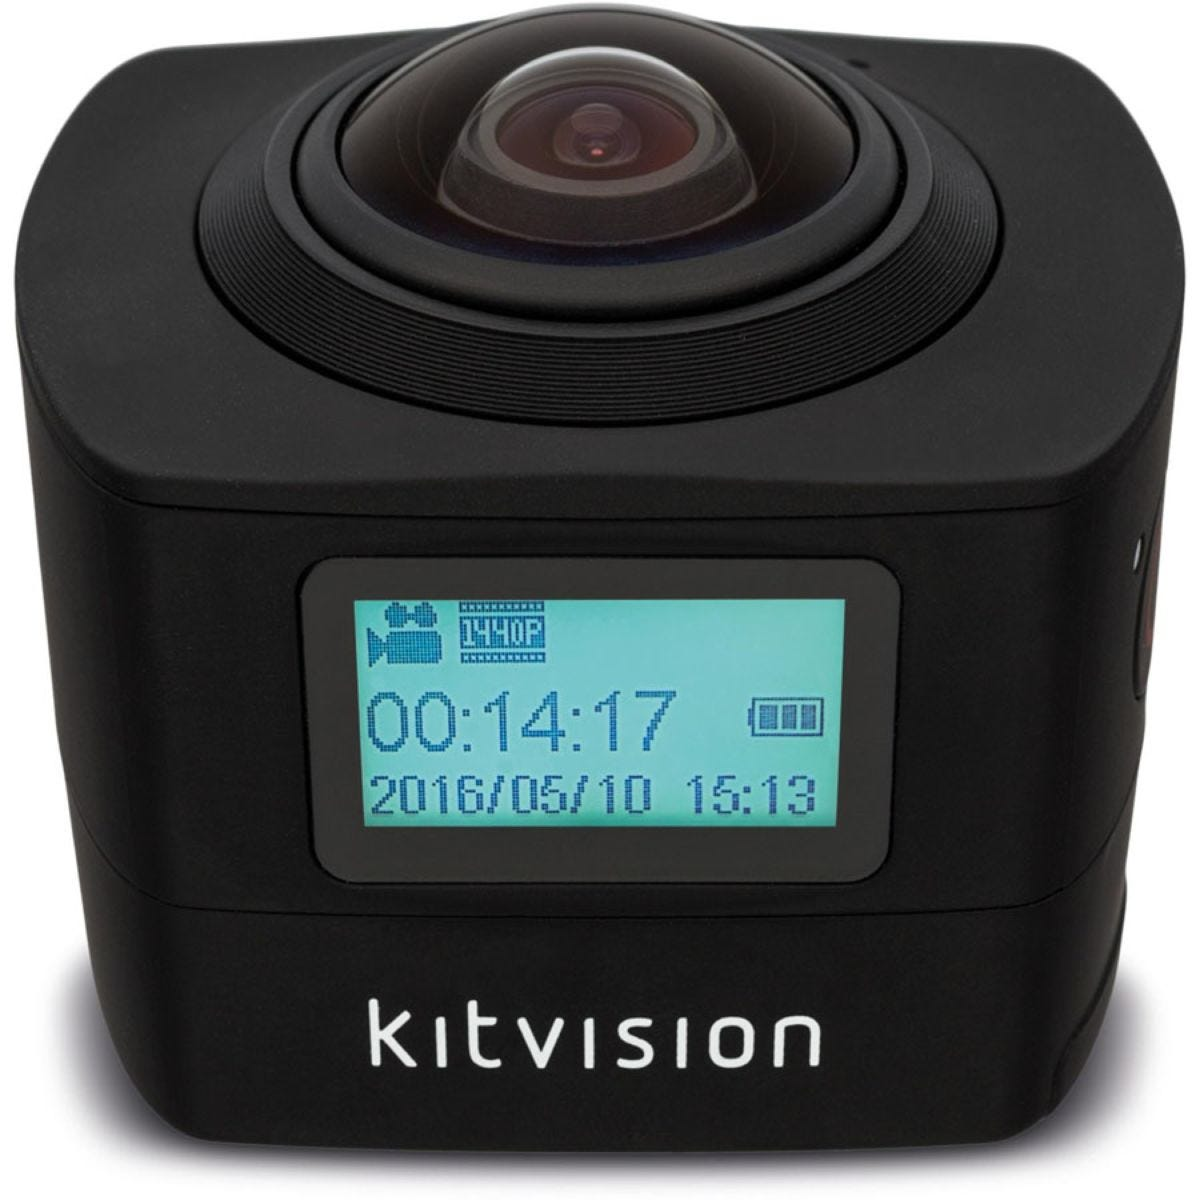 Kitvision Immerse 360 Degree Action Camera - Black